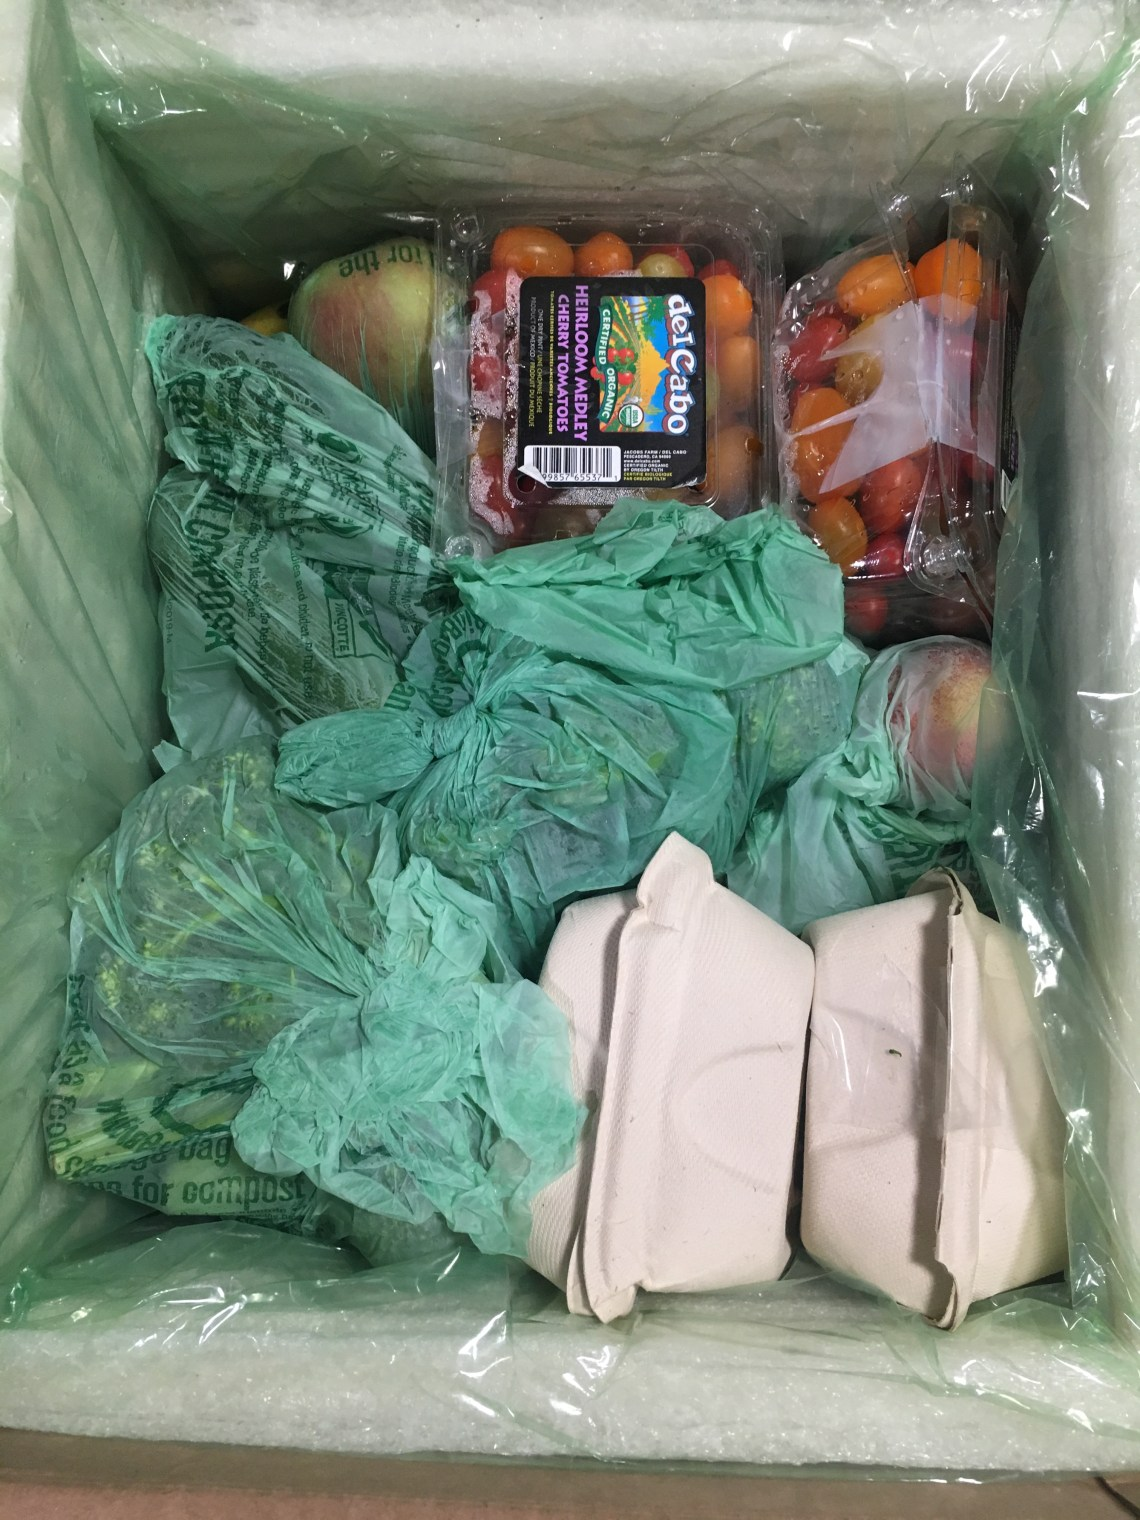 Looking into the just-opened Misfits box we see some cardboard take-out style containers, some veggies like broccoli wrapped in a plastic-type film, loose apples, and grape tomatoes in a plastic clamshell container.